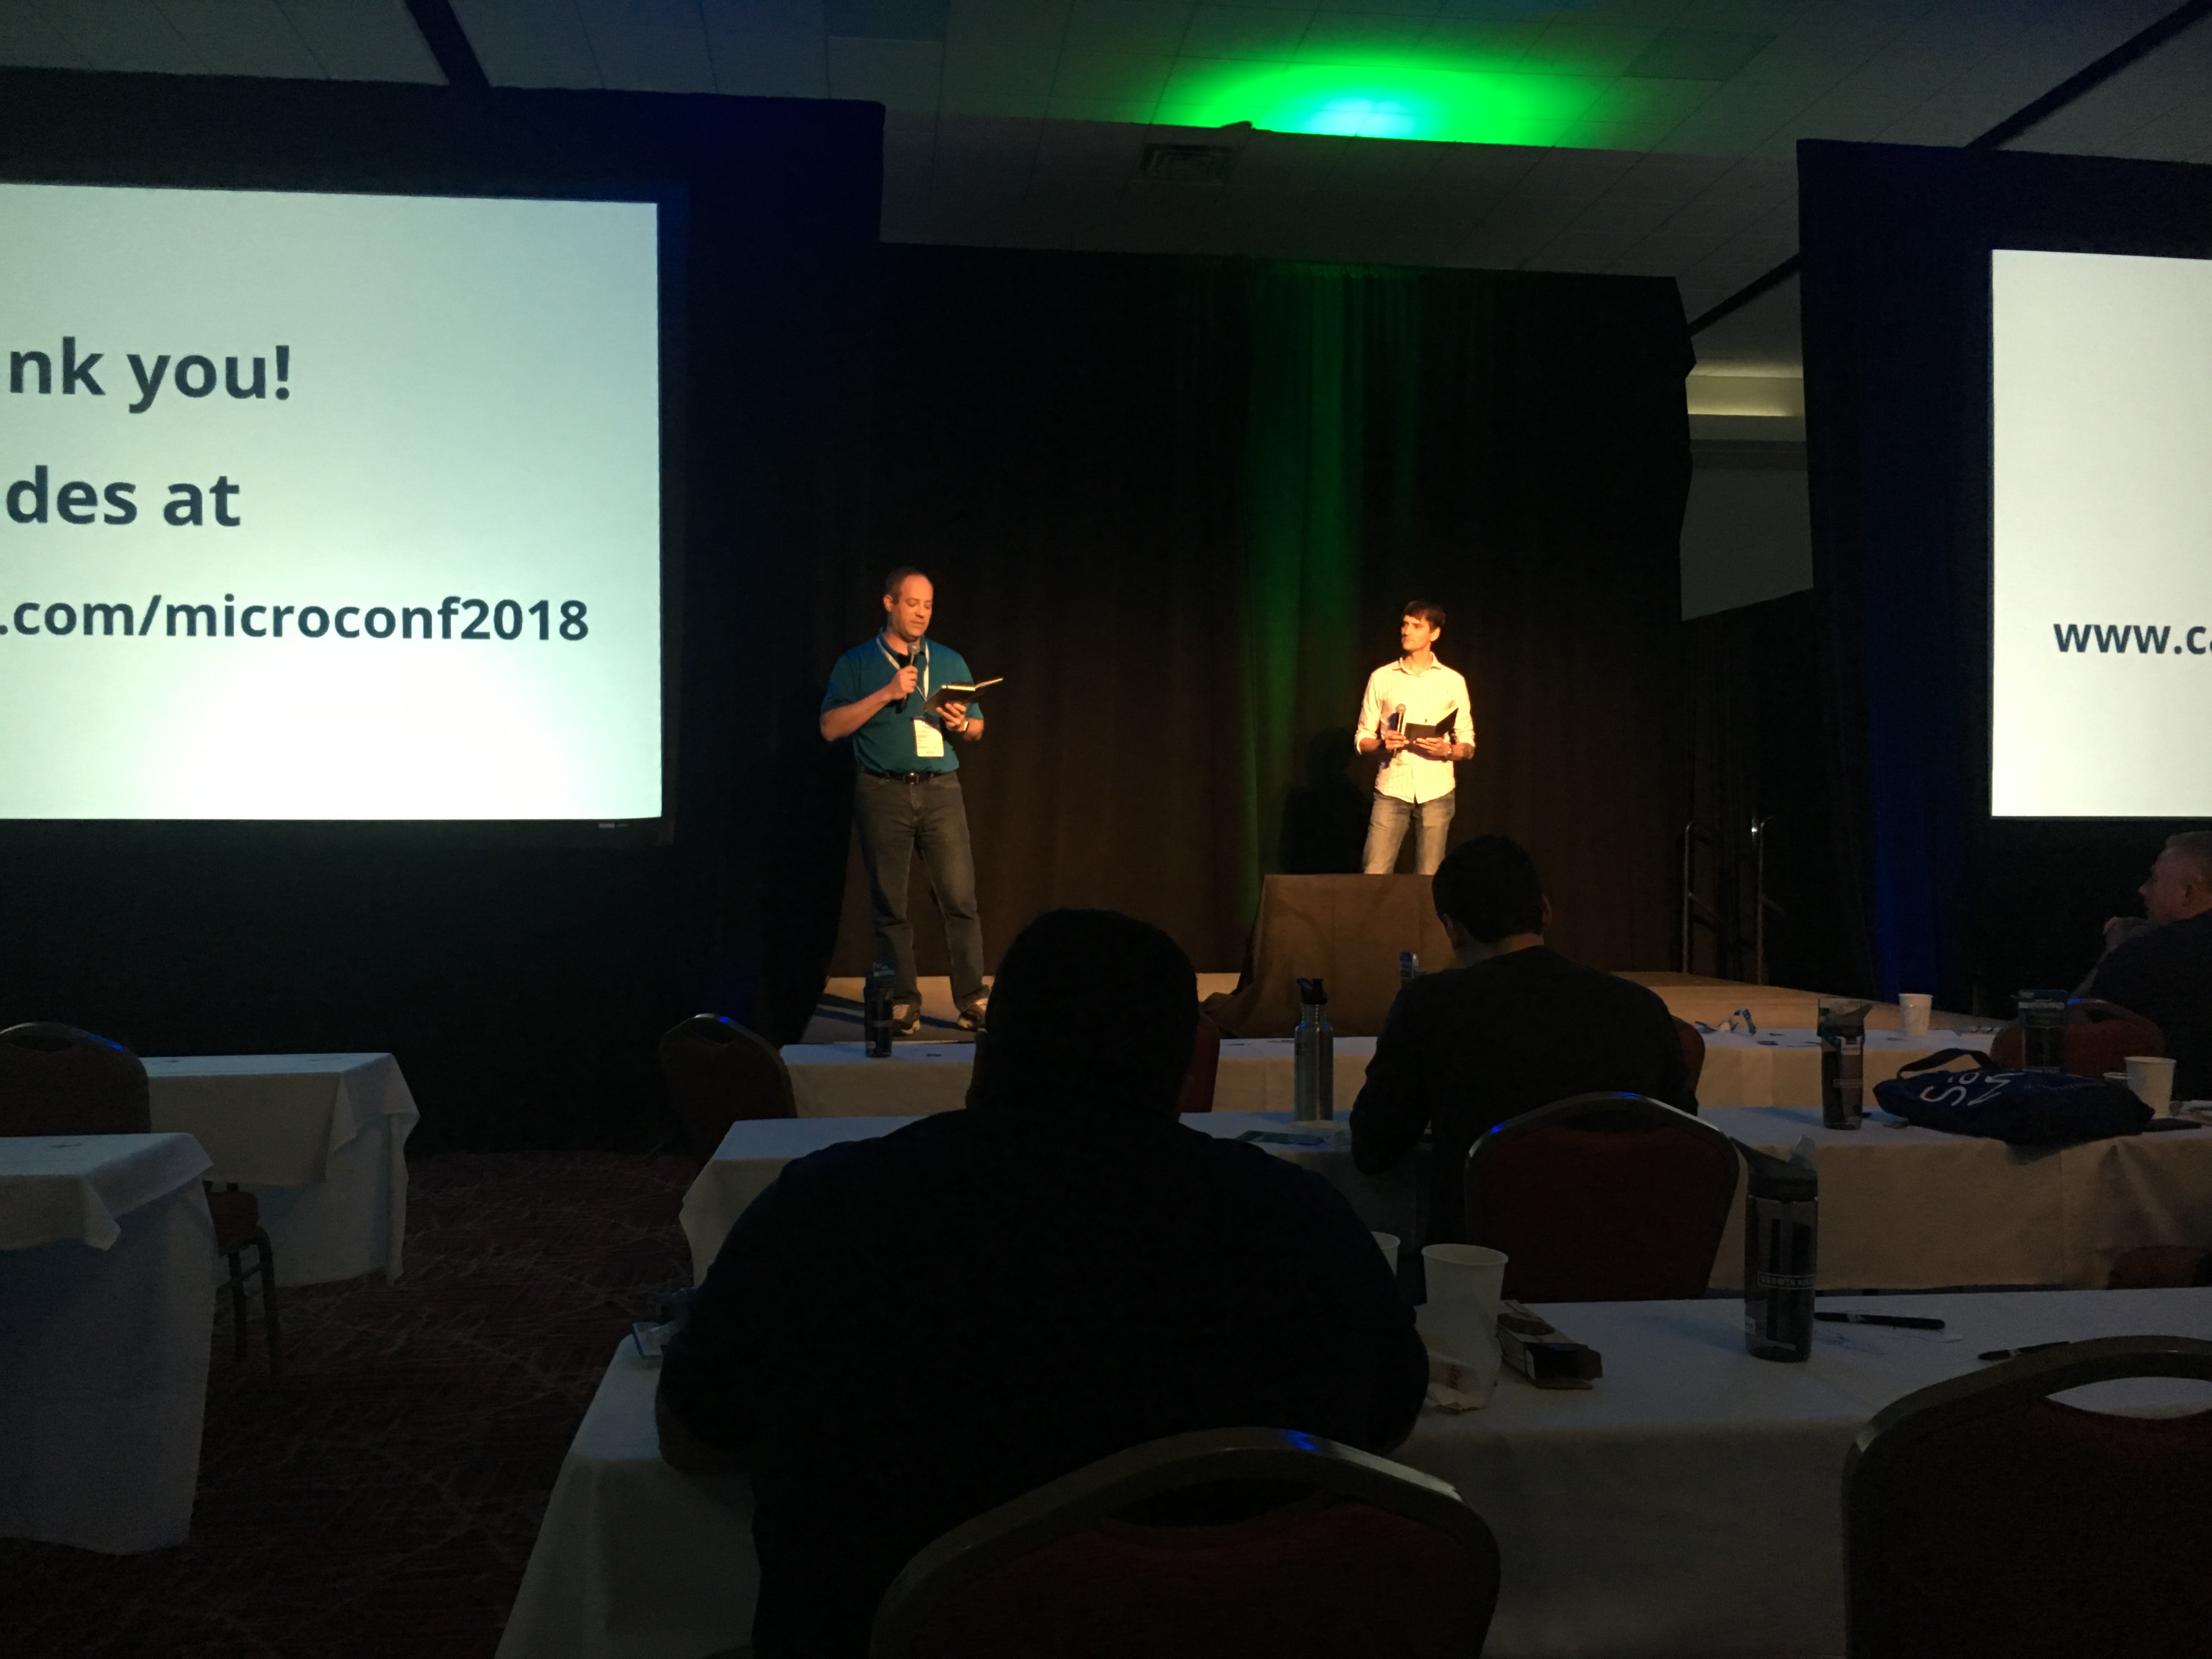 Rob Walling and Mike Taber presenting at MicroConf